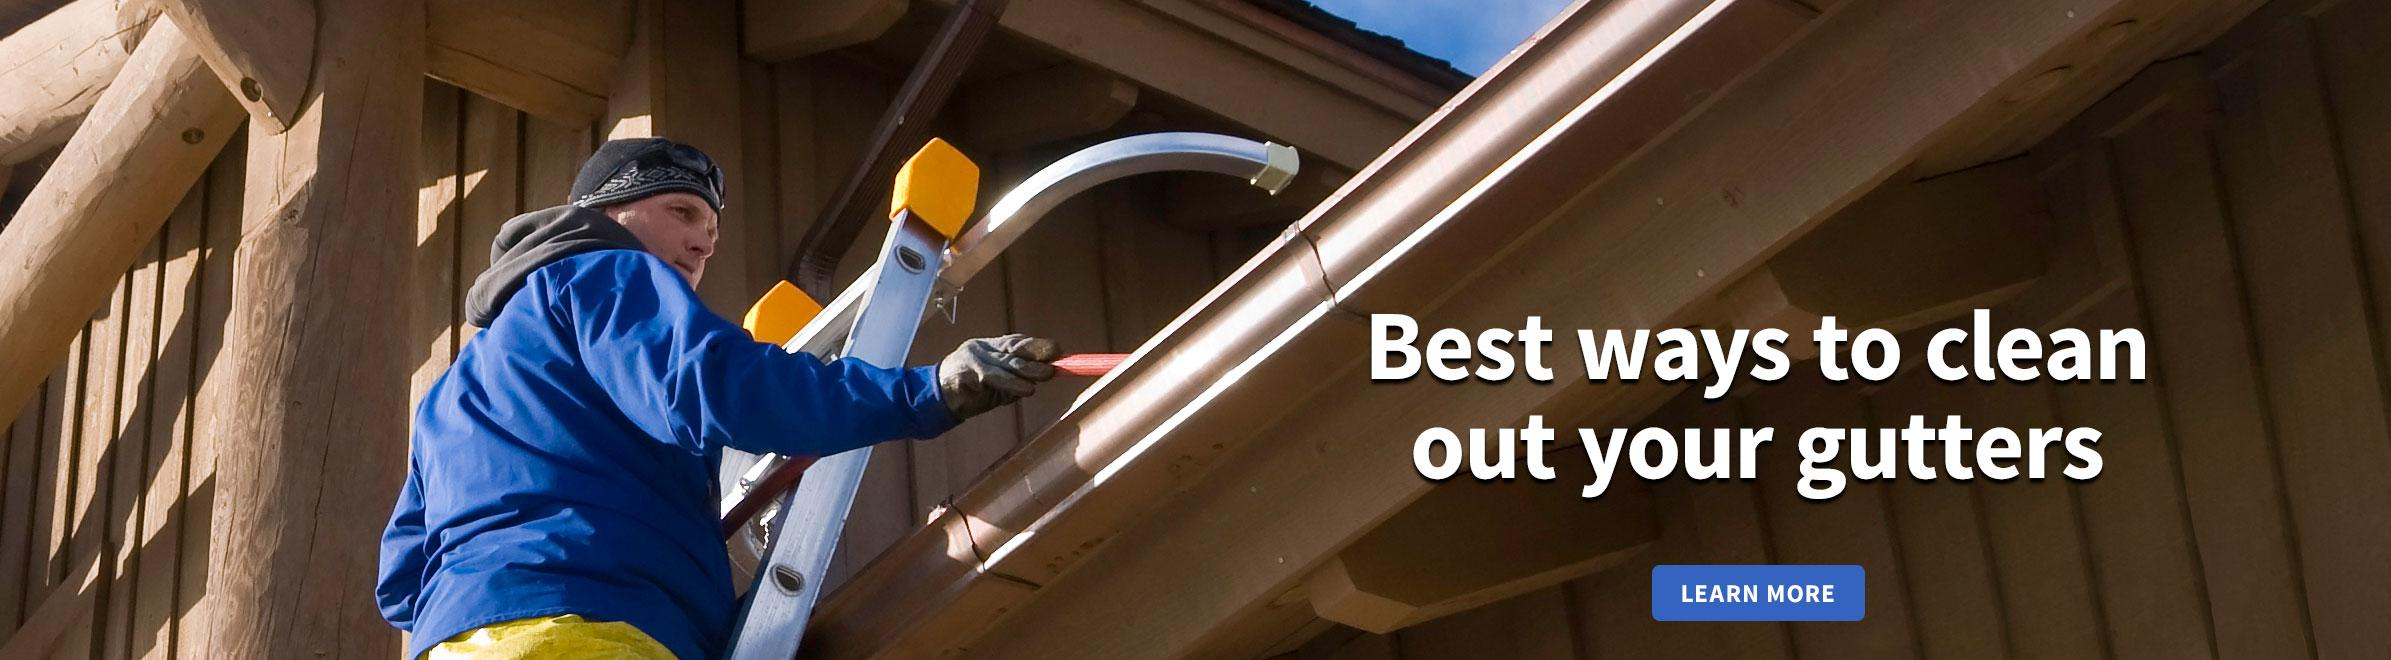 Best Ways to Clean Out Your Gutters